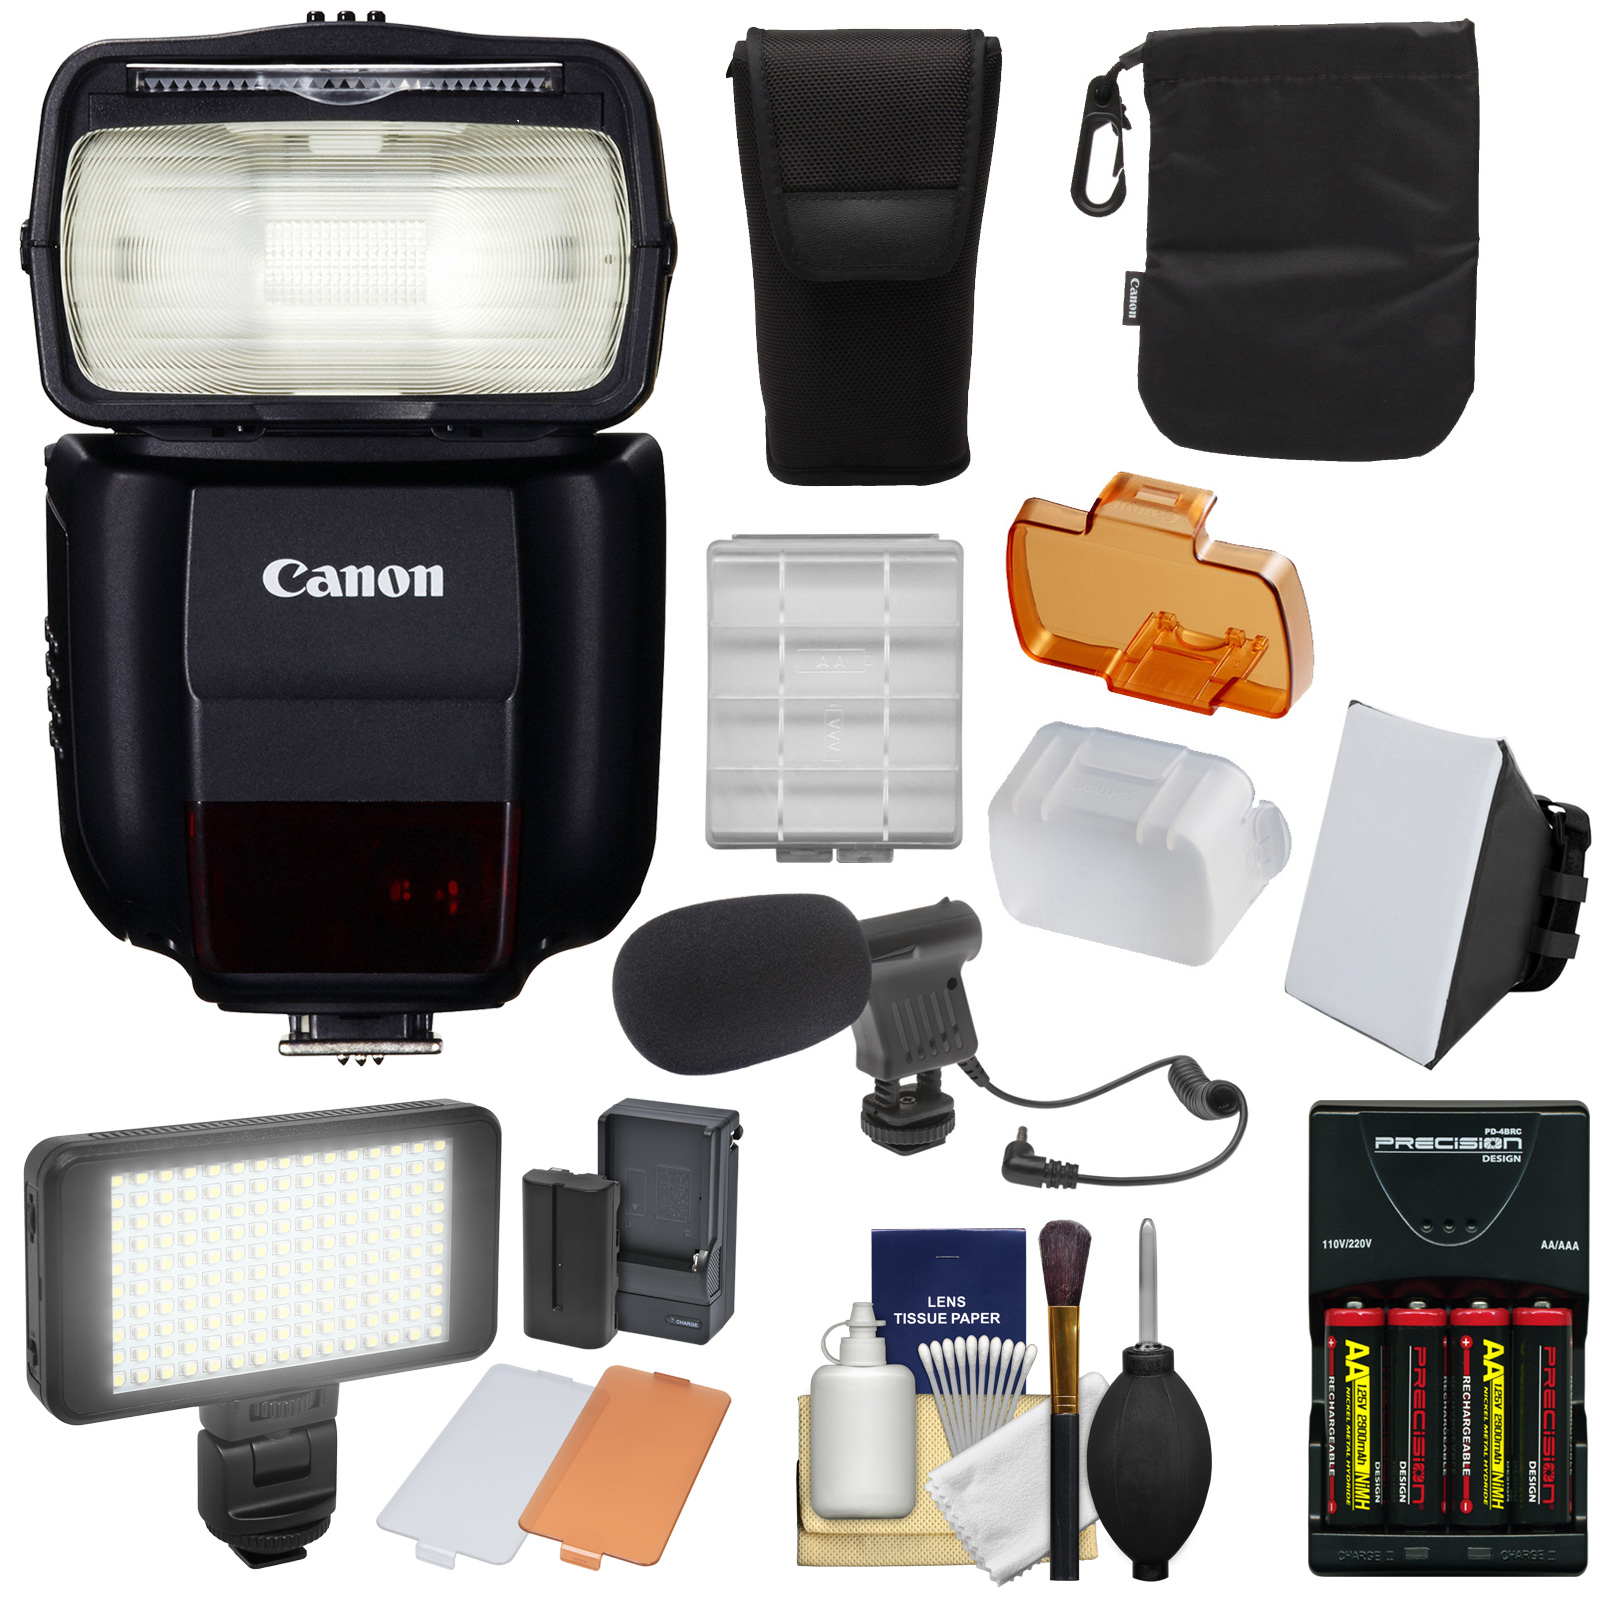 Canon Speedlite 430EX III-RT Flash with Soft Box + Batter...